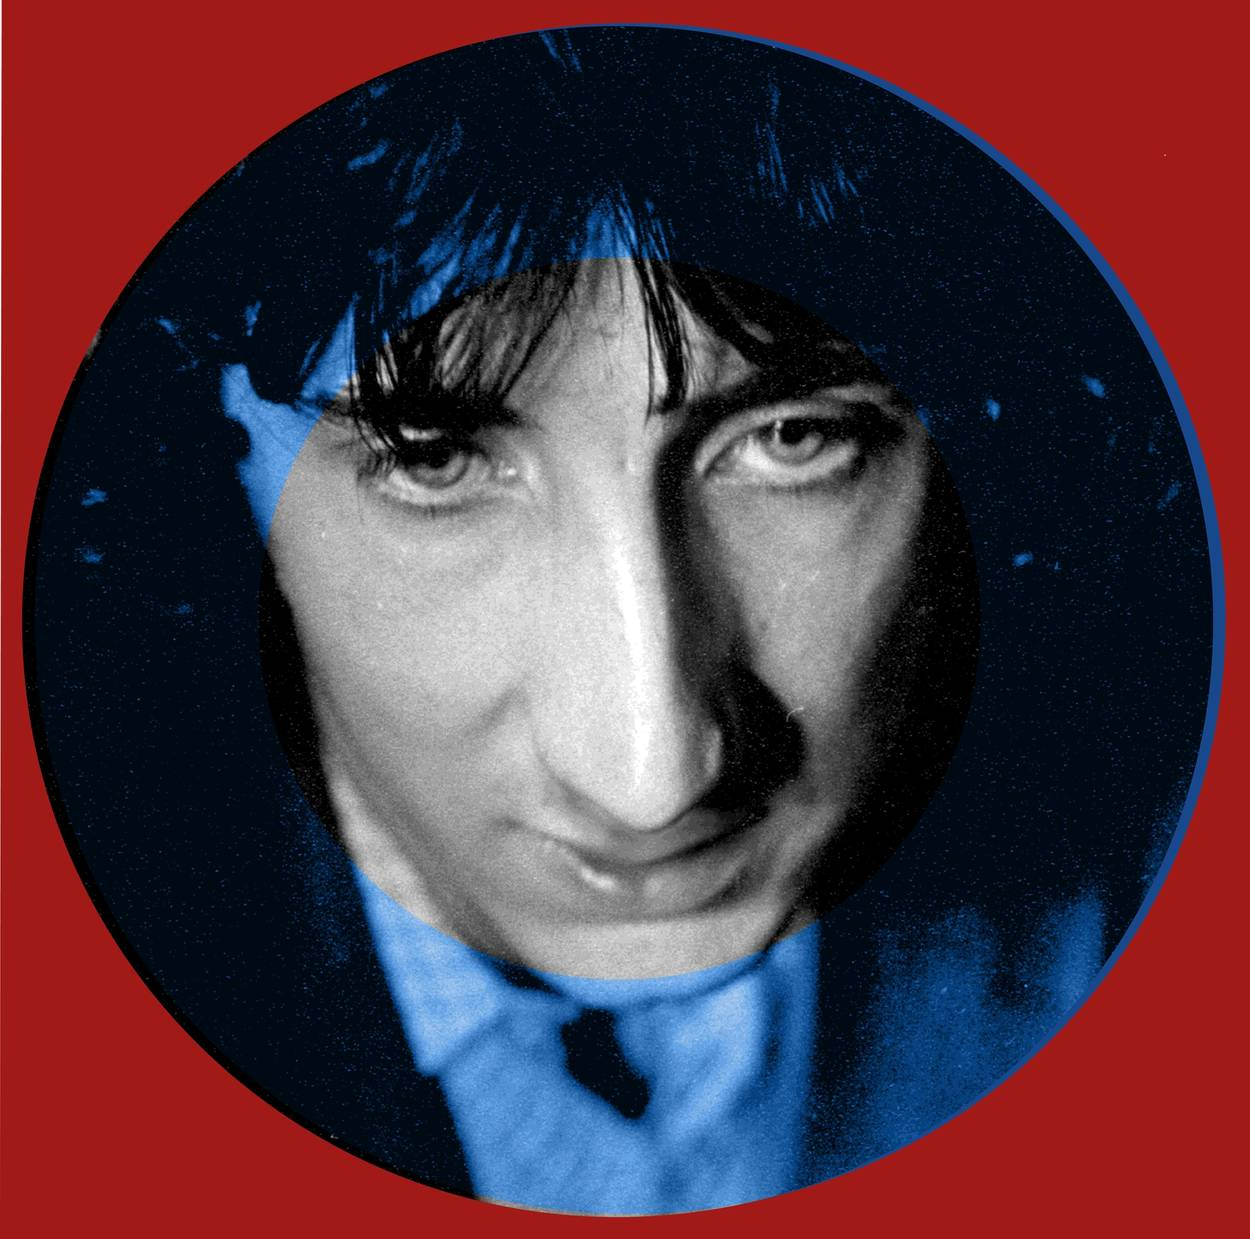 Pete Townshend's Nose